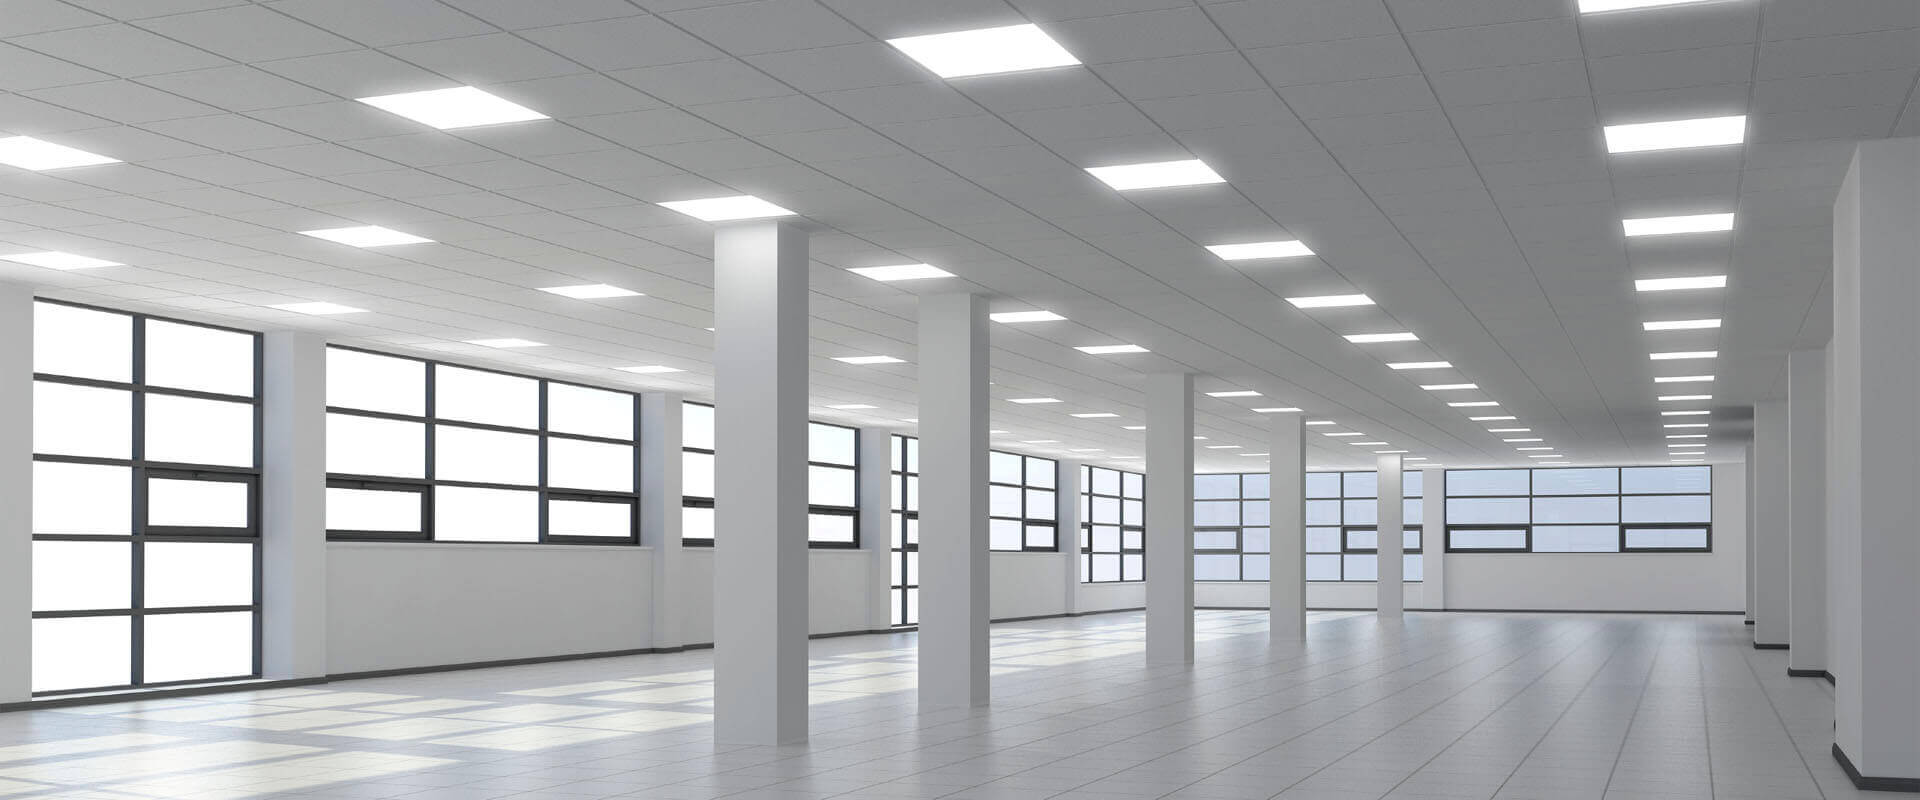 LED lighting services in Loughton